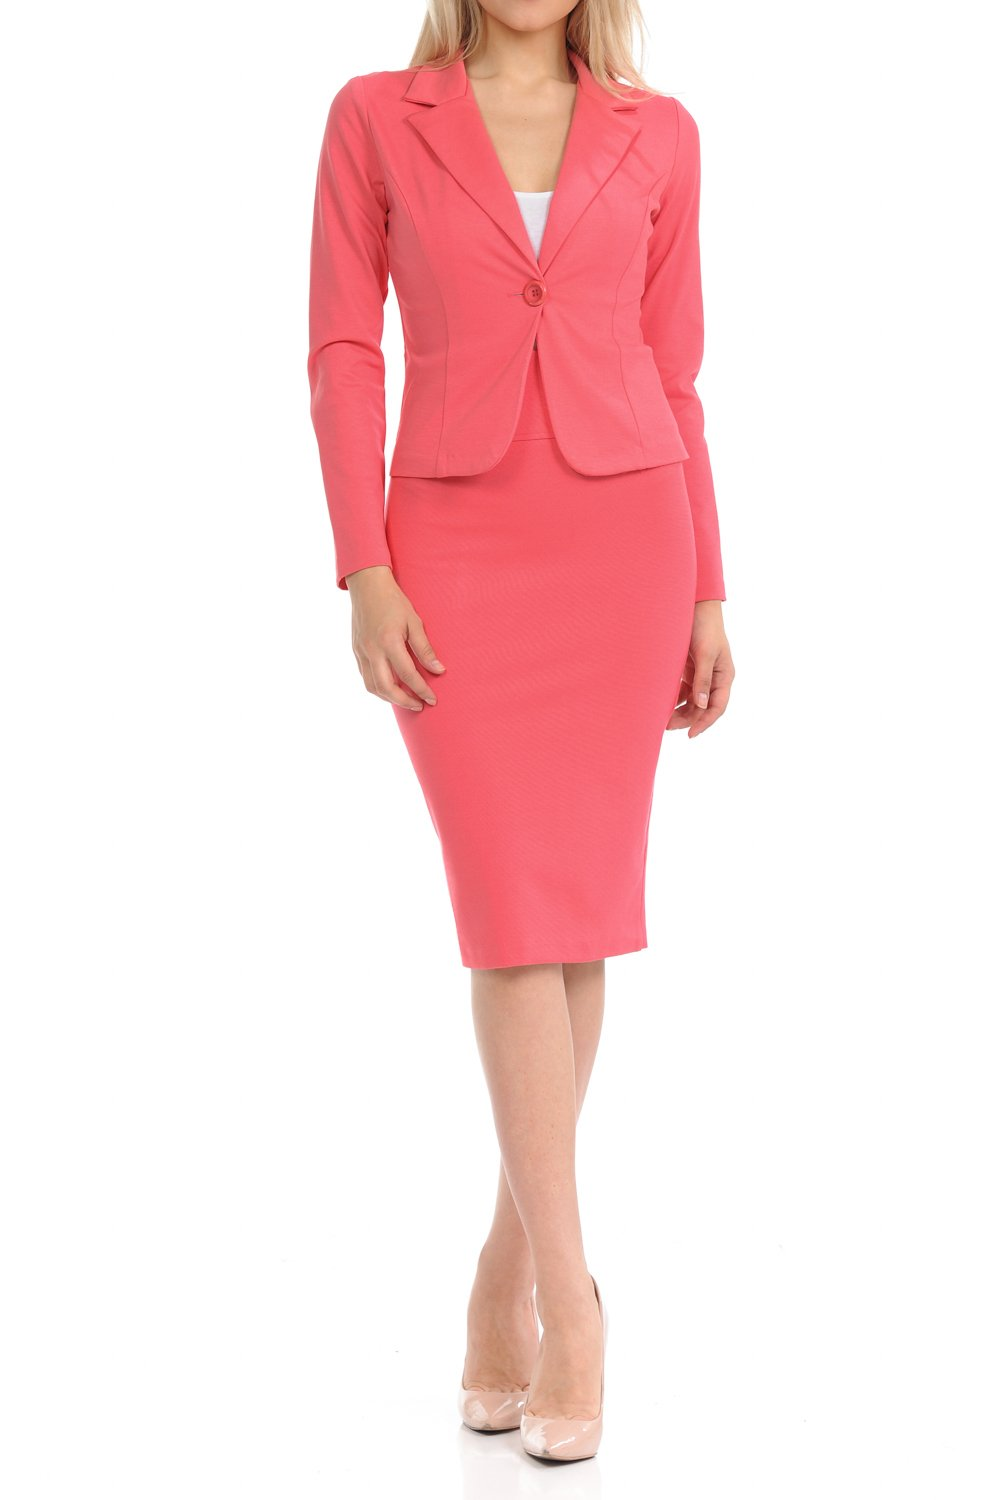 Sweethabit Womens Wear to Work Solid Skirt Suit Set (Small, 3127N-3087N_Pink) by Sweethabit